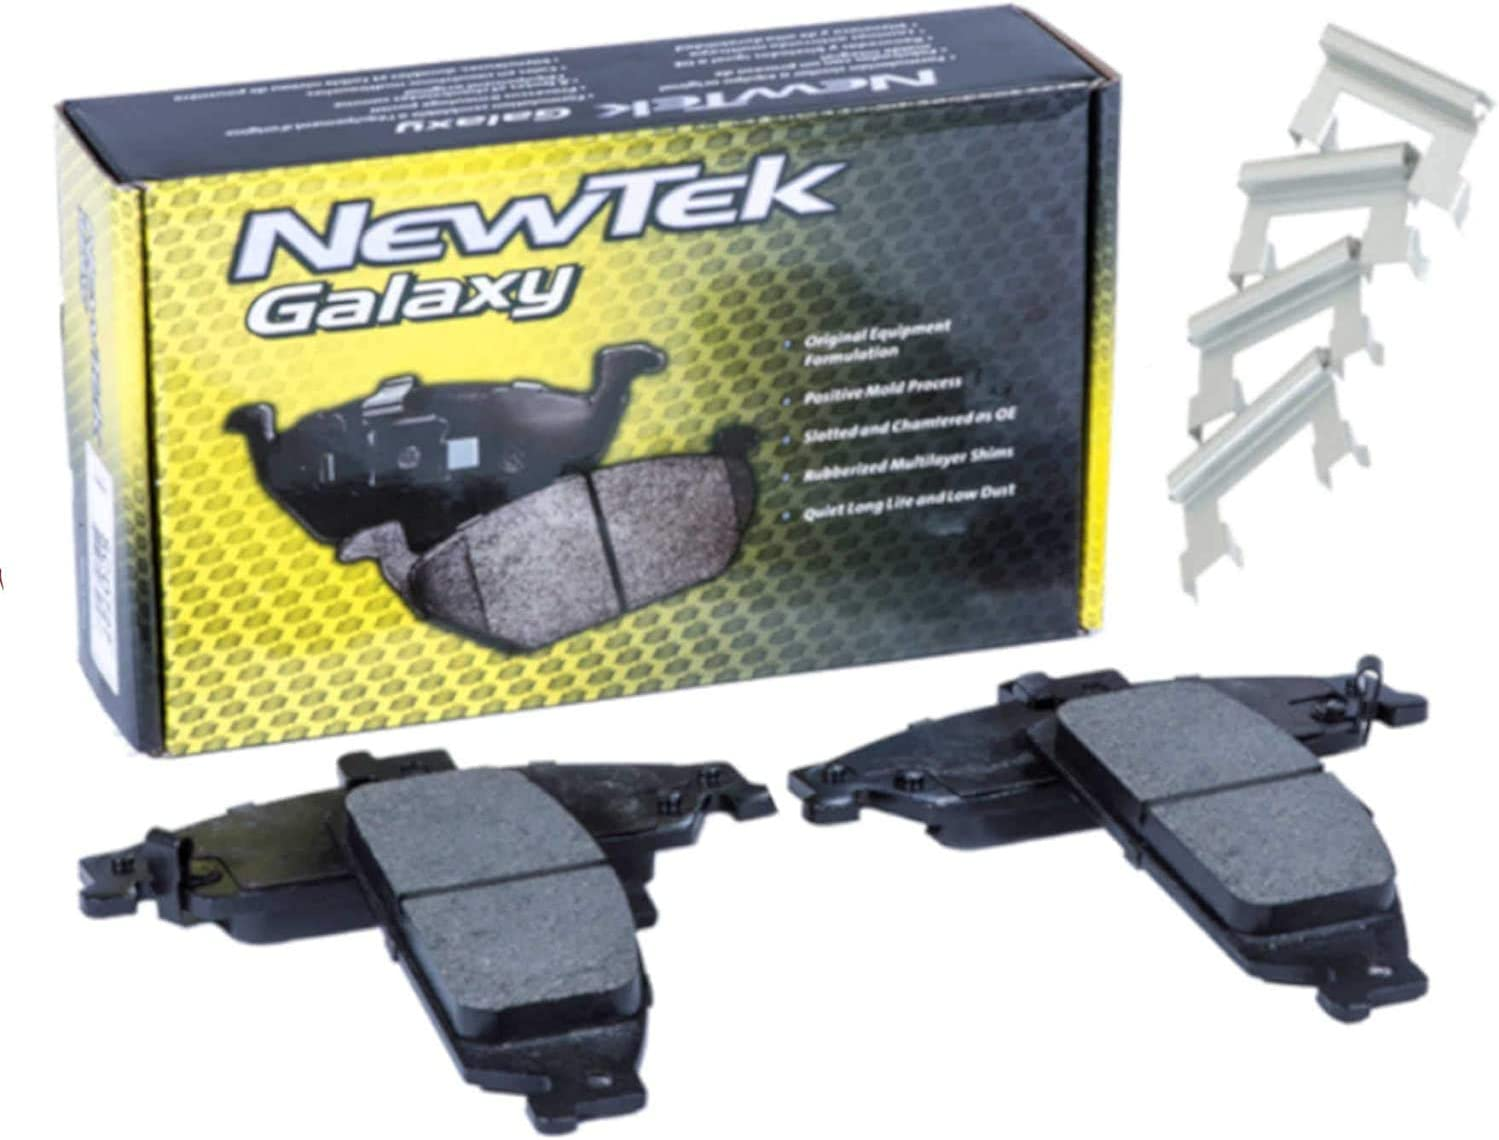 09-17 Dodge Challenger 06-16 Dodge Charger 08-09 Dodge Caliber 13-14 Chrysler 200 05-18 Chrysler 300 NewTek SCD1058H Ceramic Brake Pads with Hardware,Front Fit:05-08 Dodge Magnum